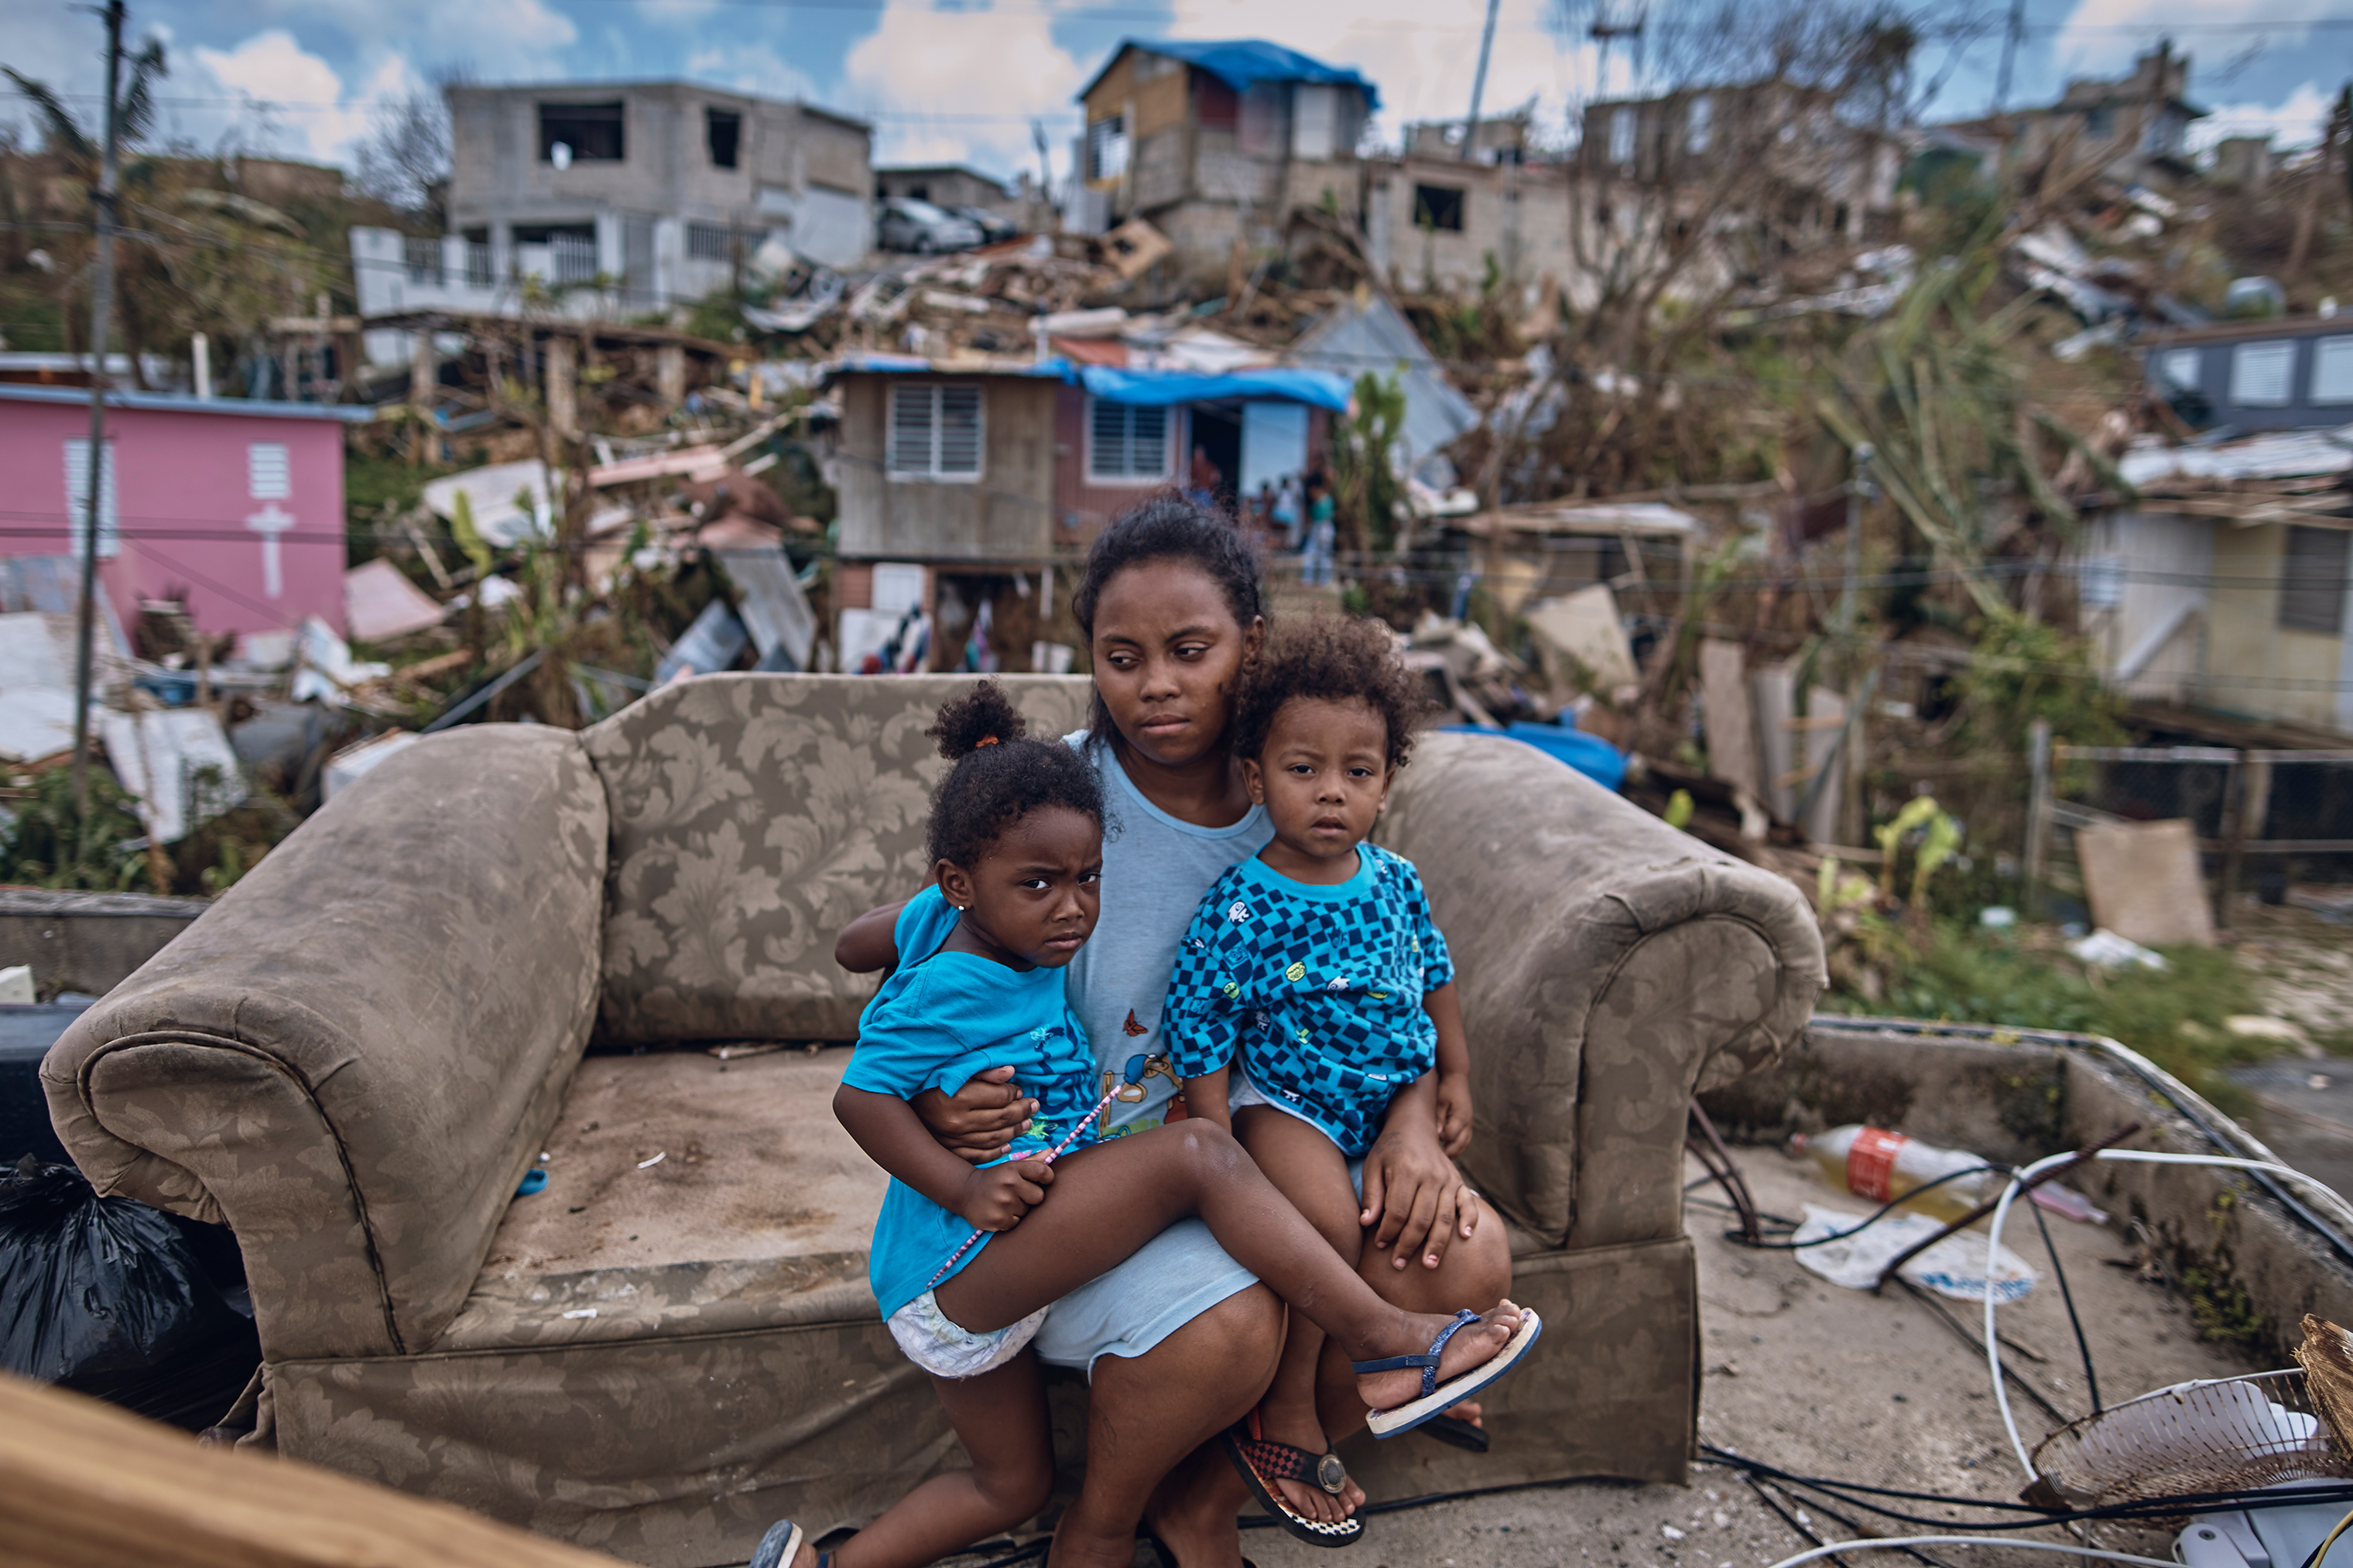 Darieliz Michelle Lopez, her 20-month-old son and three-year-old daughter sit for a portrait on the sofa where her apartment no longer stands in San Isidro, Puerto Rico, on Sept. 28, 2017.